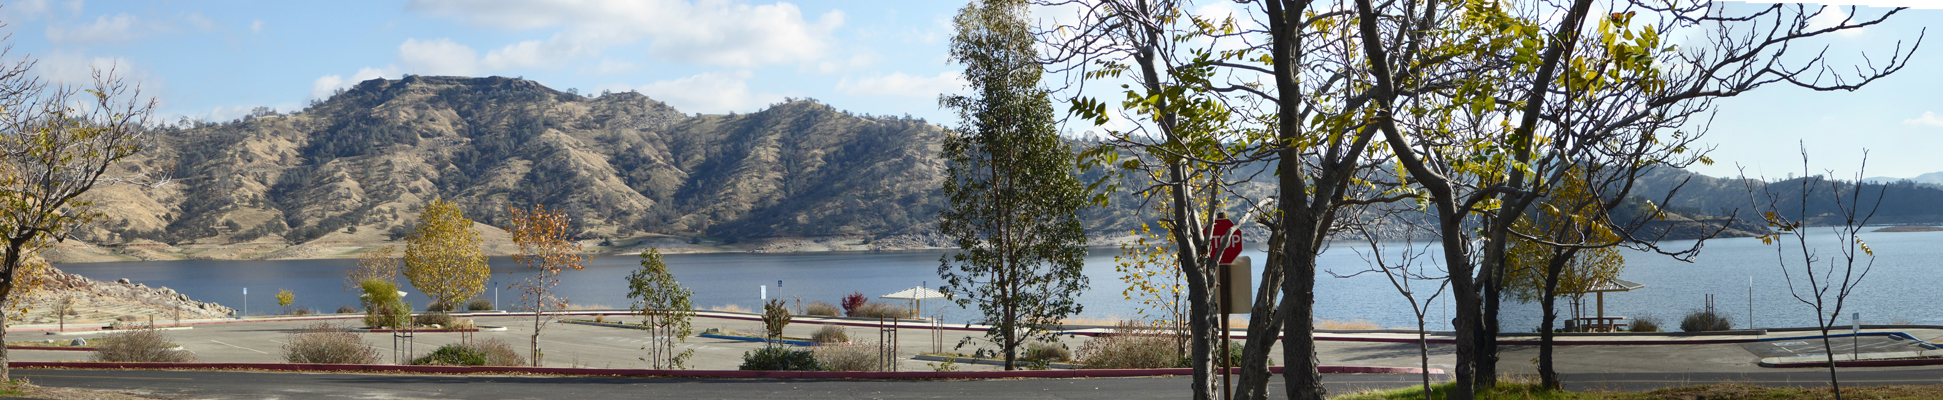 Millerton Lake Meadow viewpoint